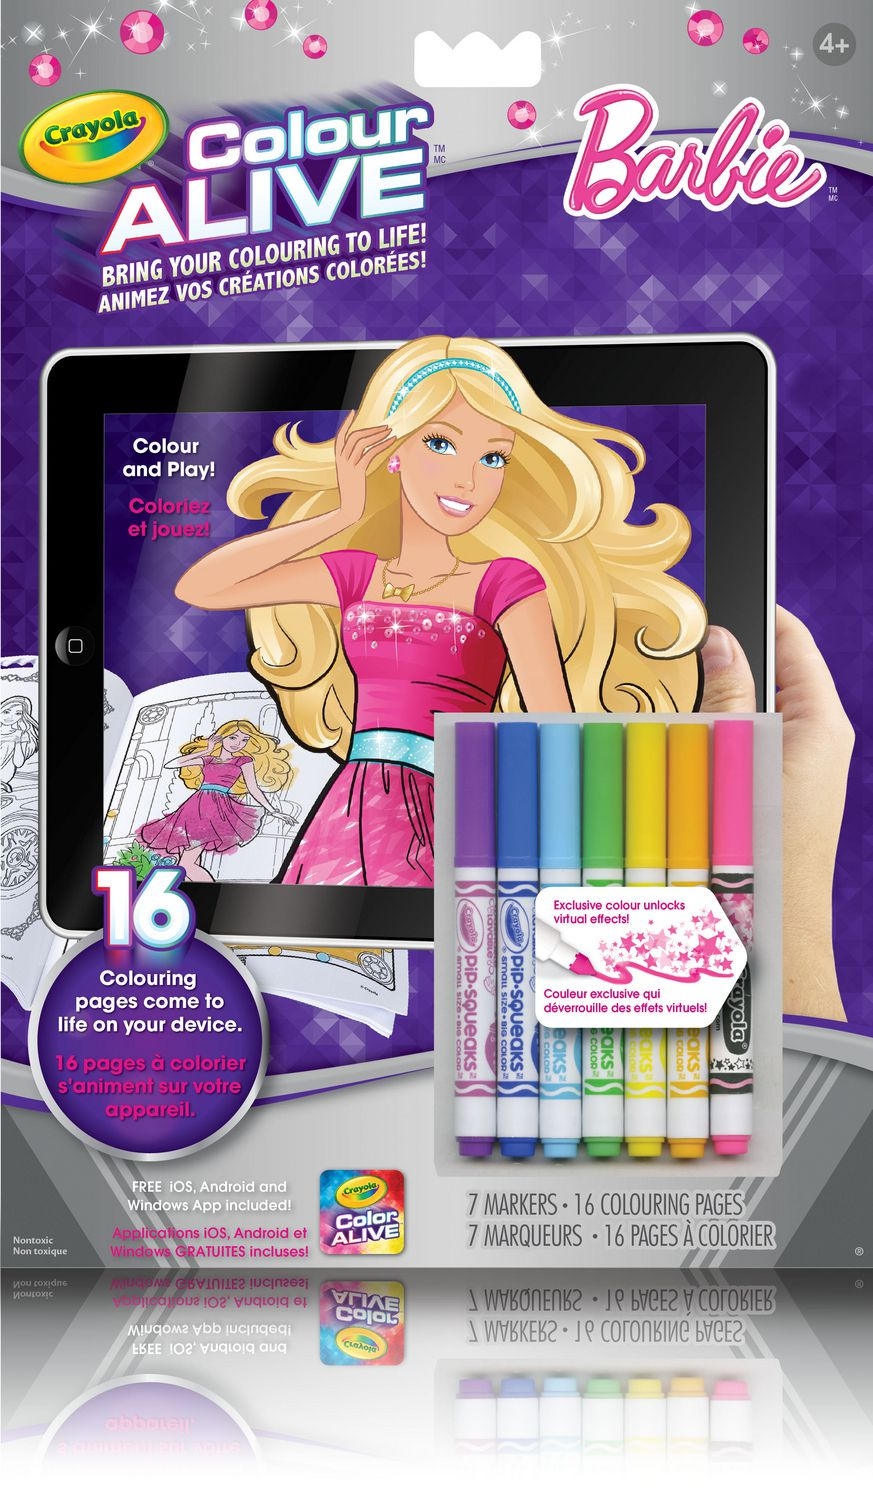 Where to buy shopkins coloring book - Crayola Colour Alive Barbie Colouring Book